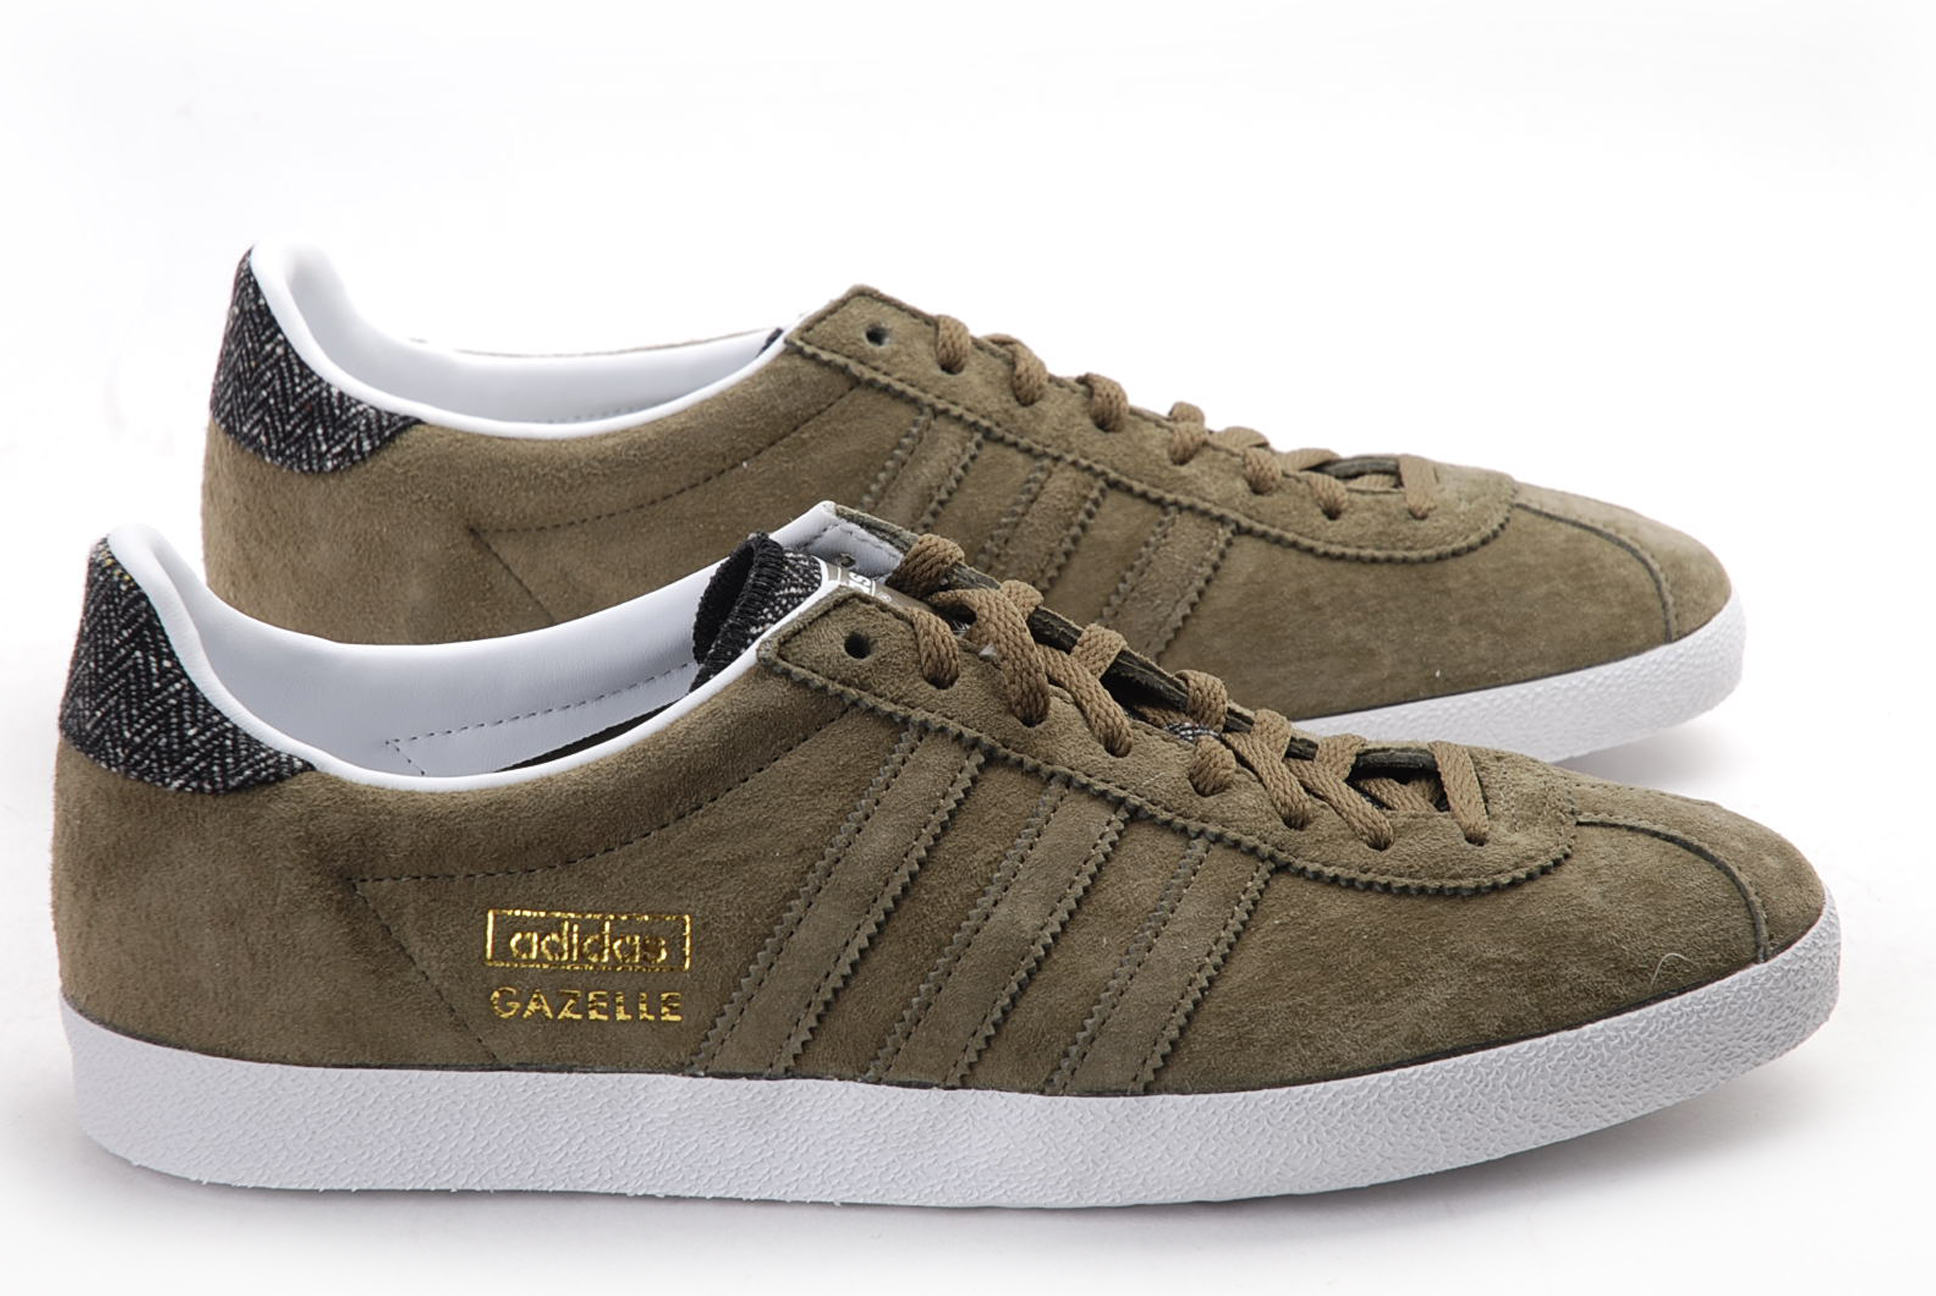 New-Mens-Adidas-Gazelle-OG-Originals-Smart-Casual-